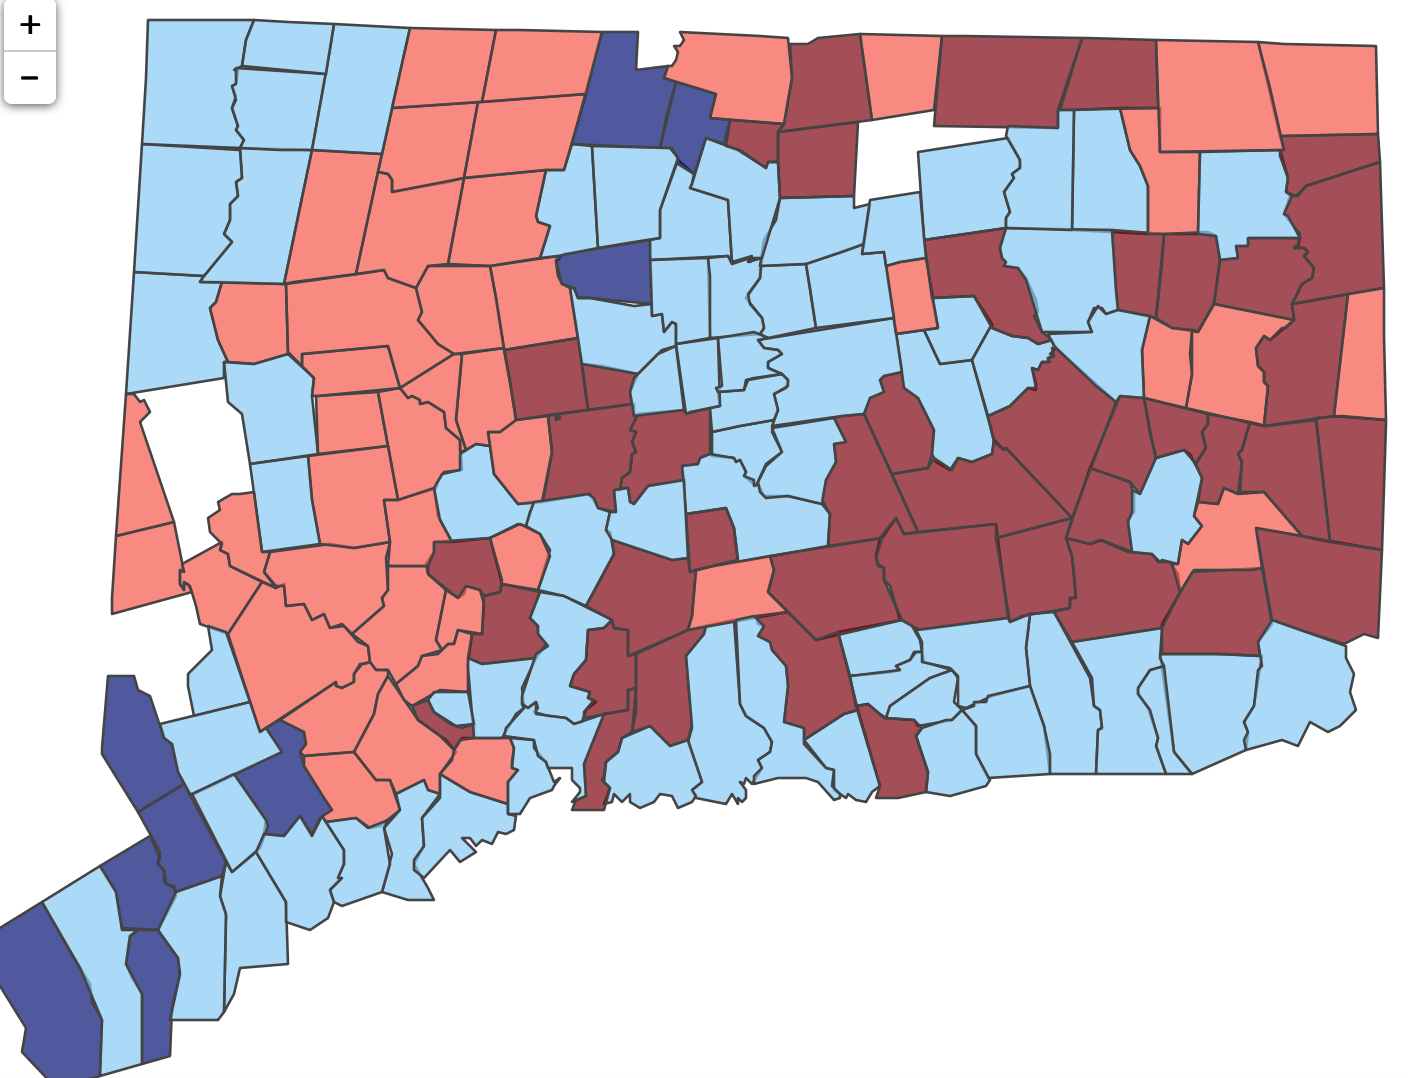 About 50 towns flipped in 2016 presidential vote